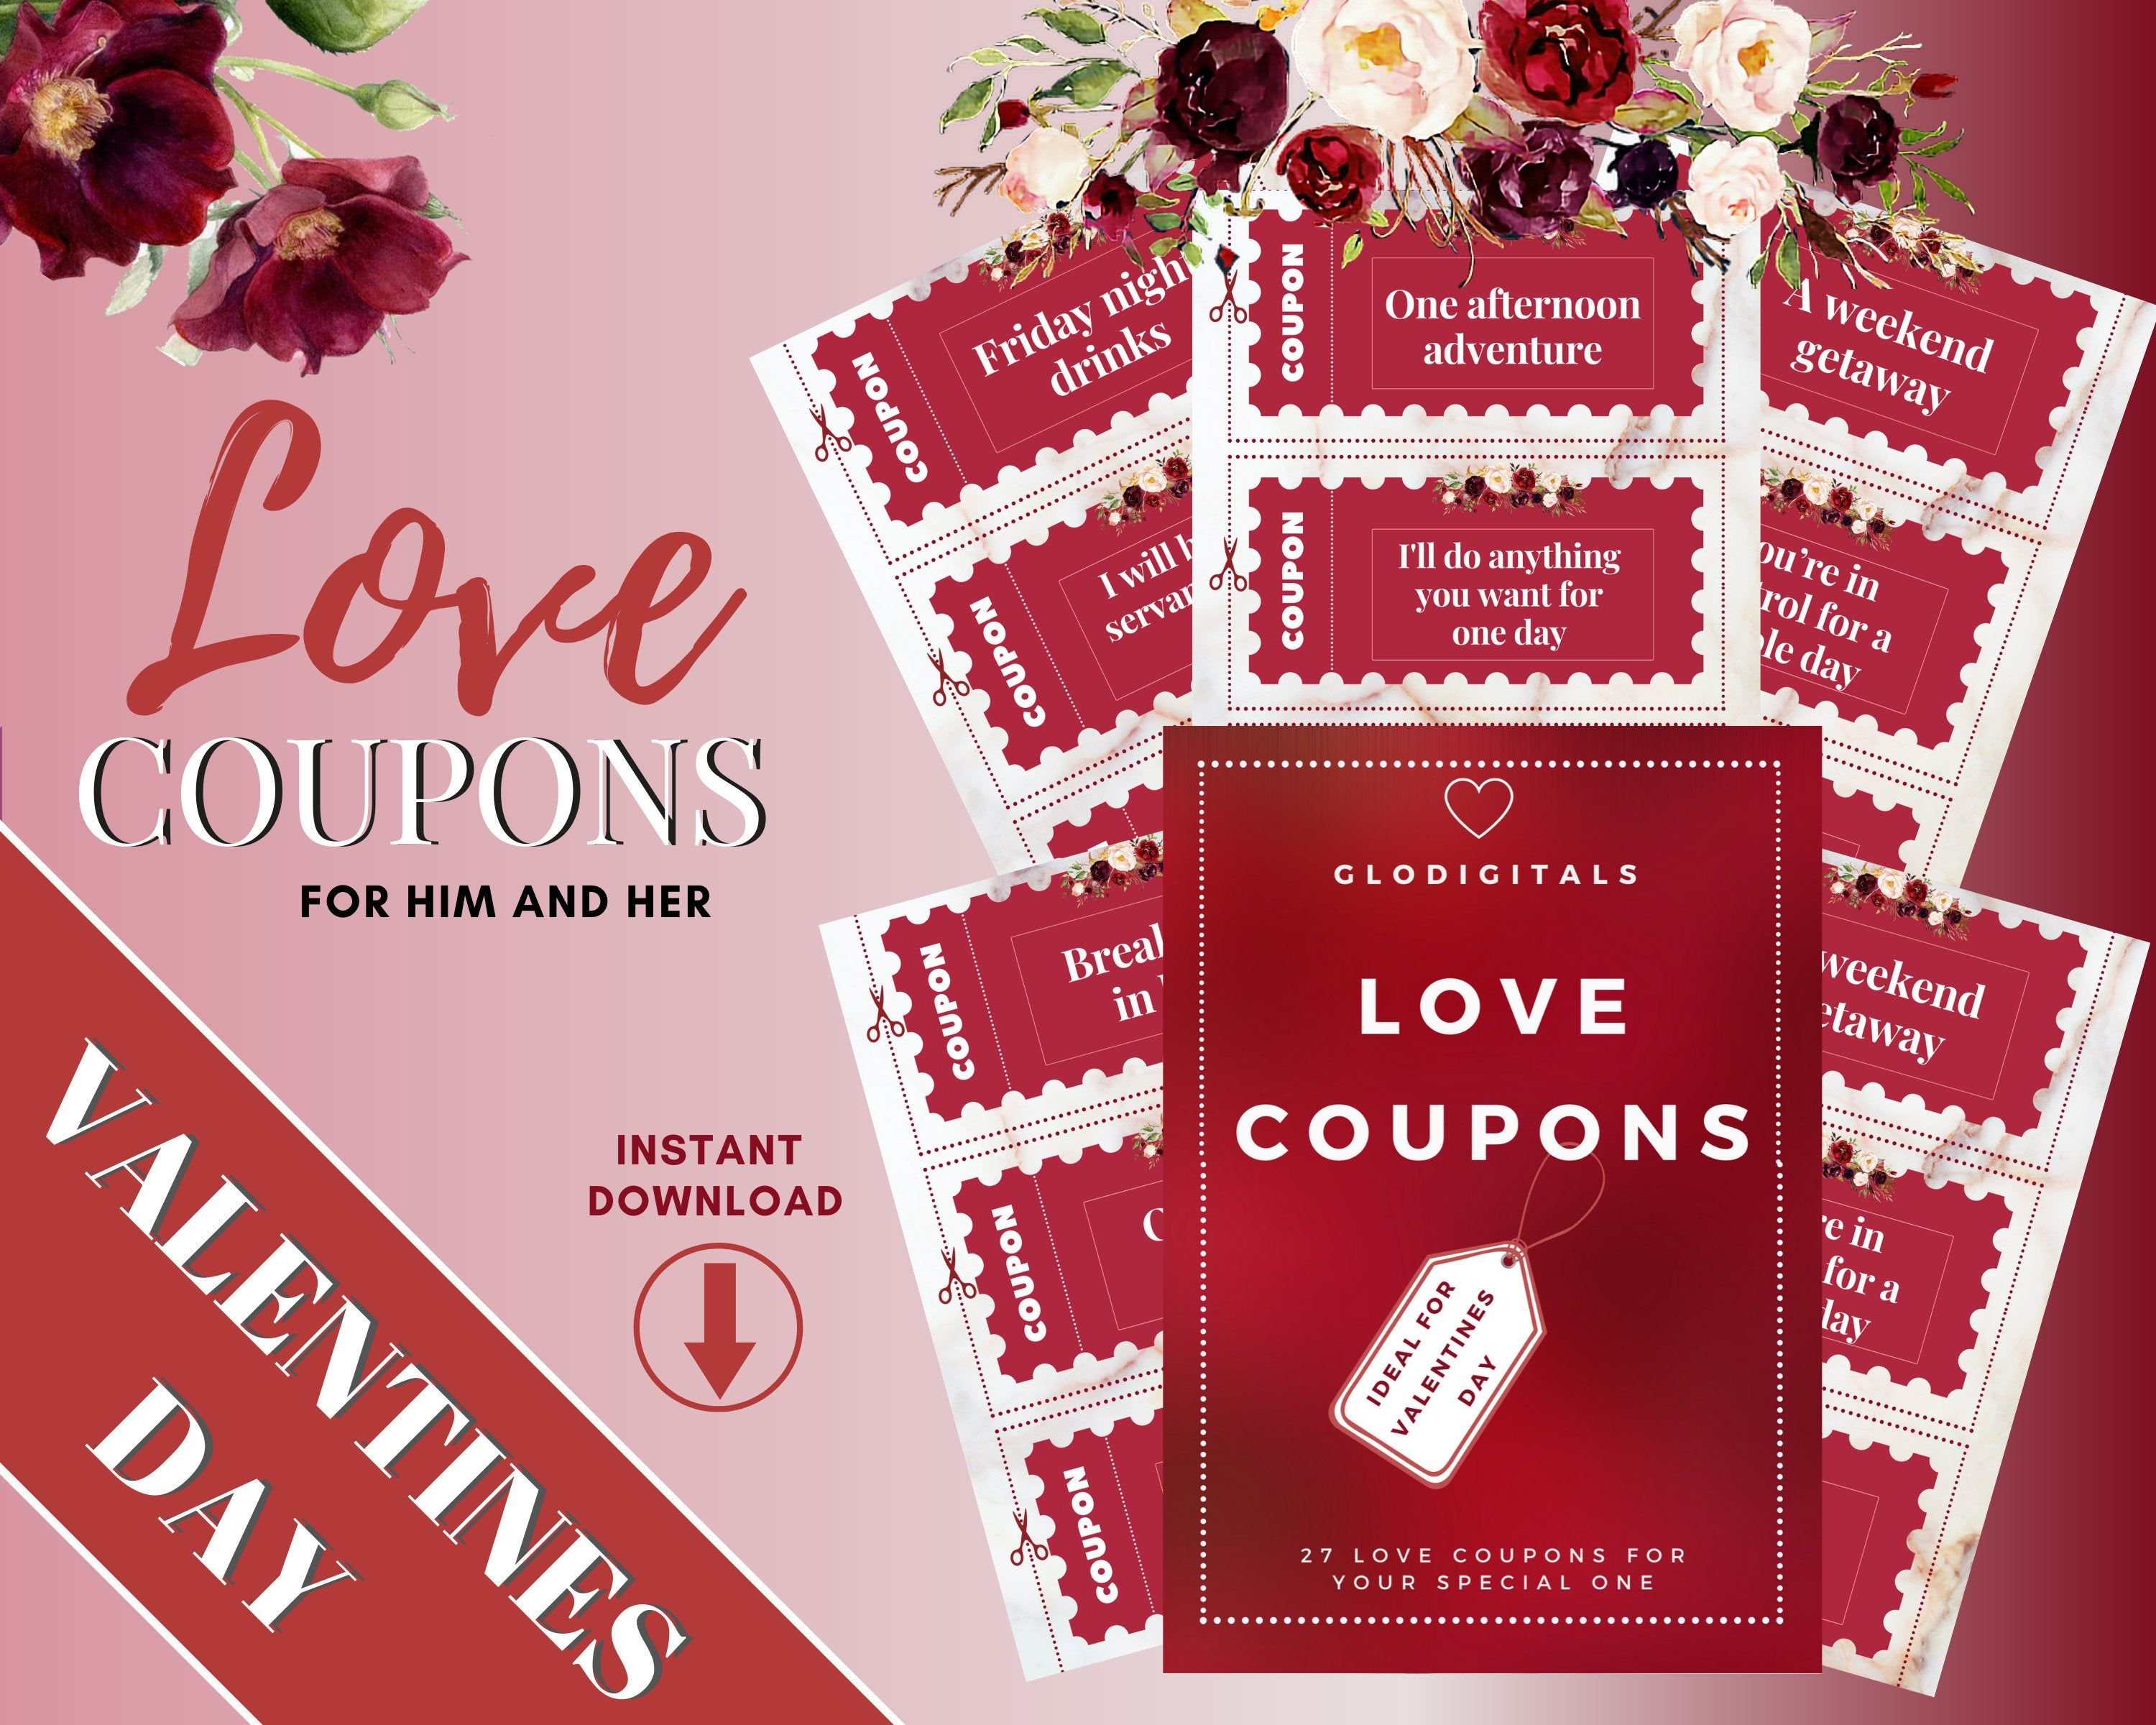 Love Coupons Gift For Her And For Him Last Minute Valentines Gift 27 Printable Coupons For Your Anniversary Buy Now In 2020 Love Coupons Valentine Gifts Gift Coupons